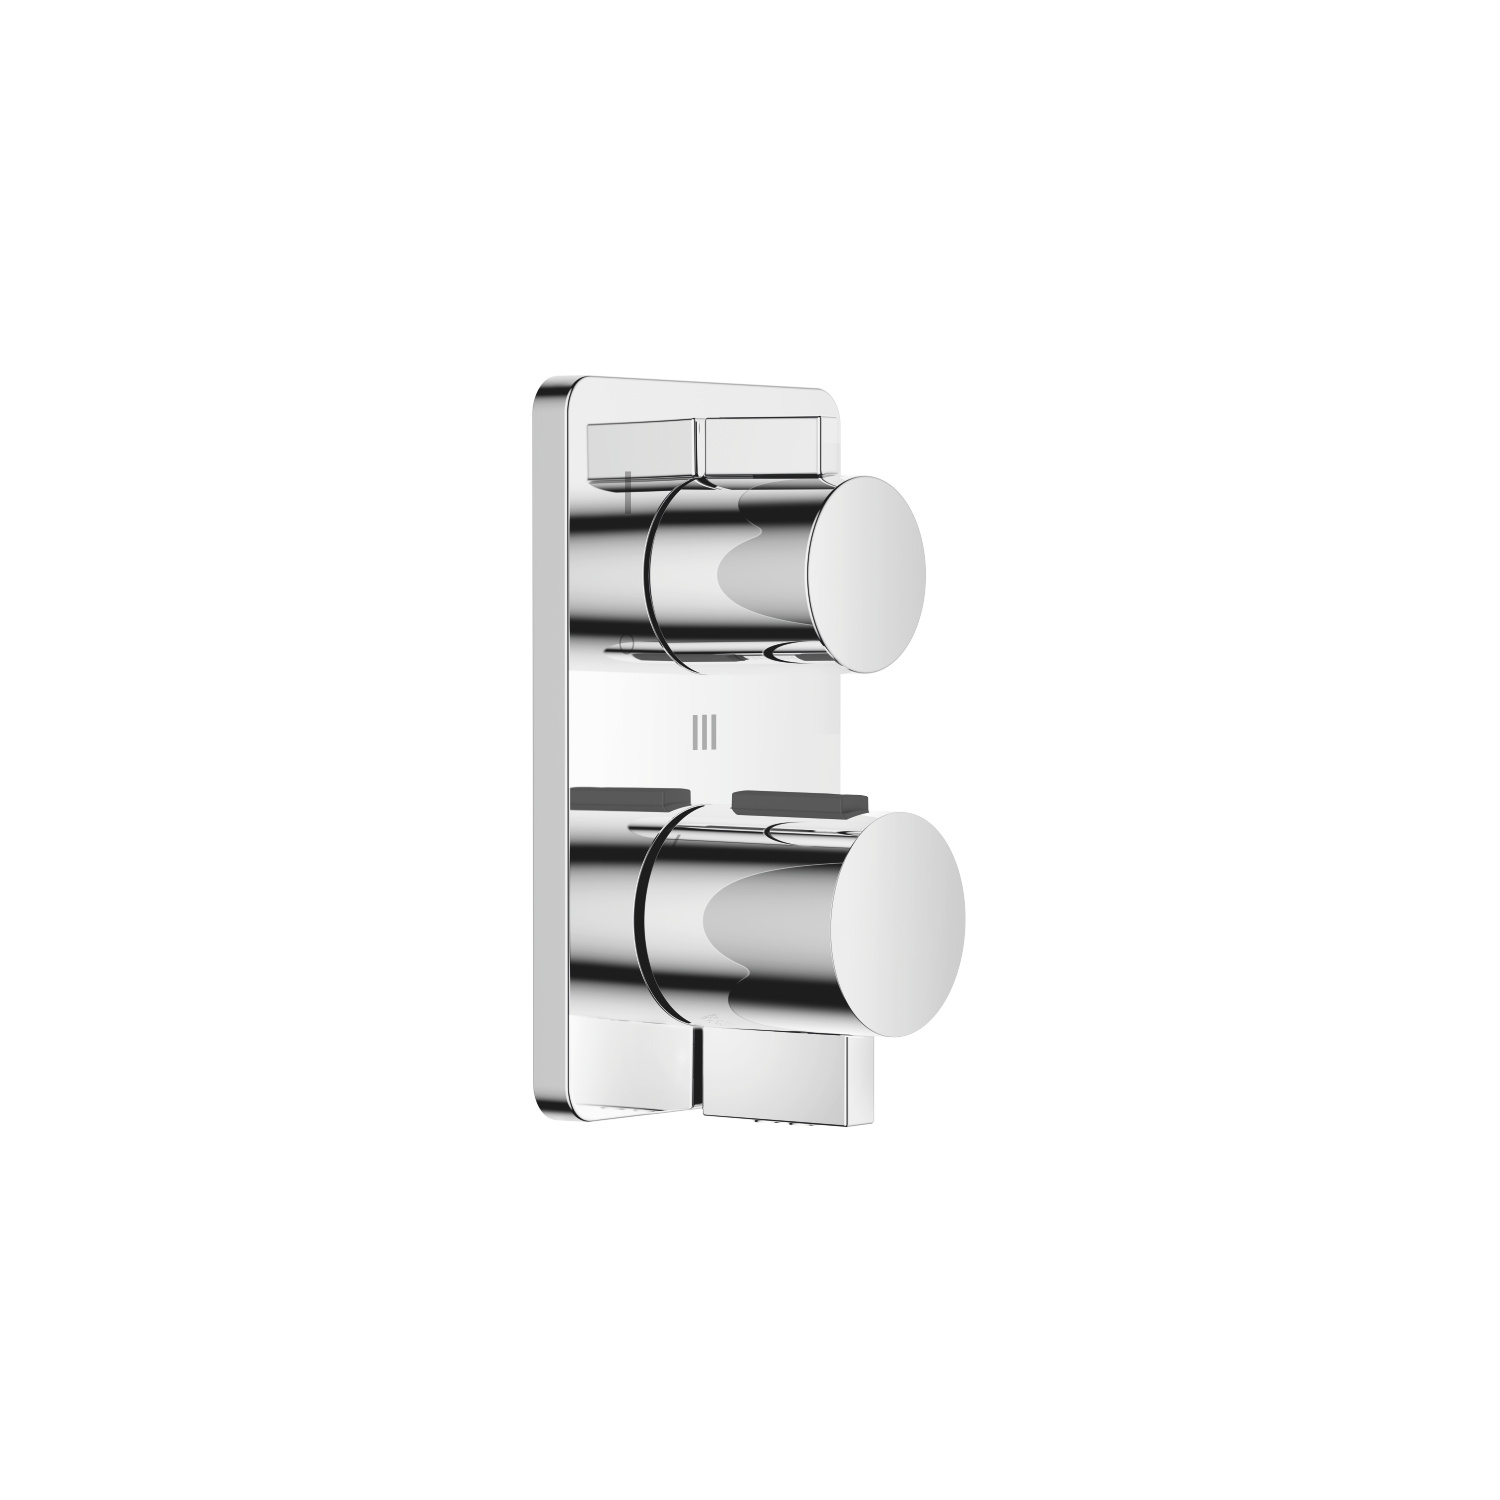 Concealed thermostat with three-way volume control - polished chrome